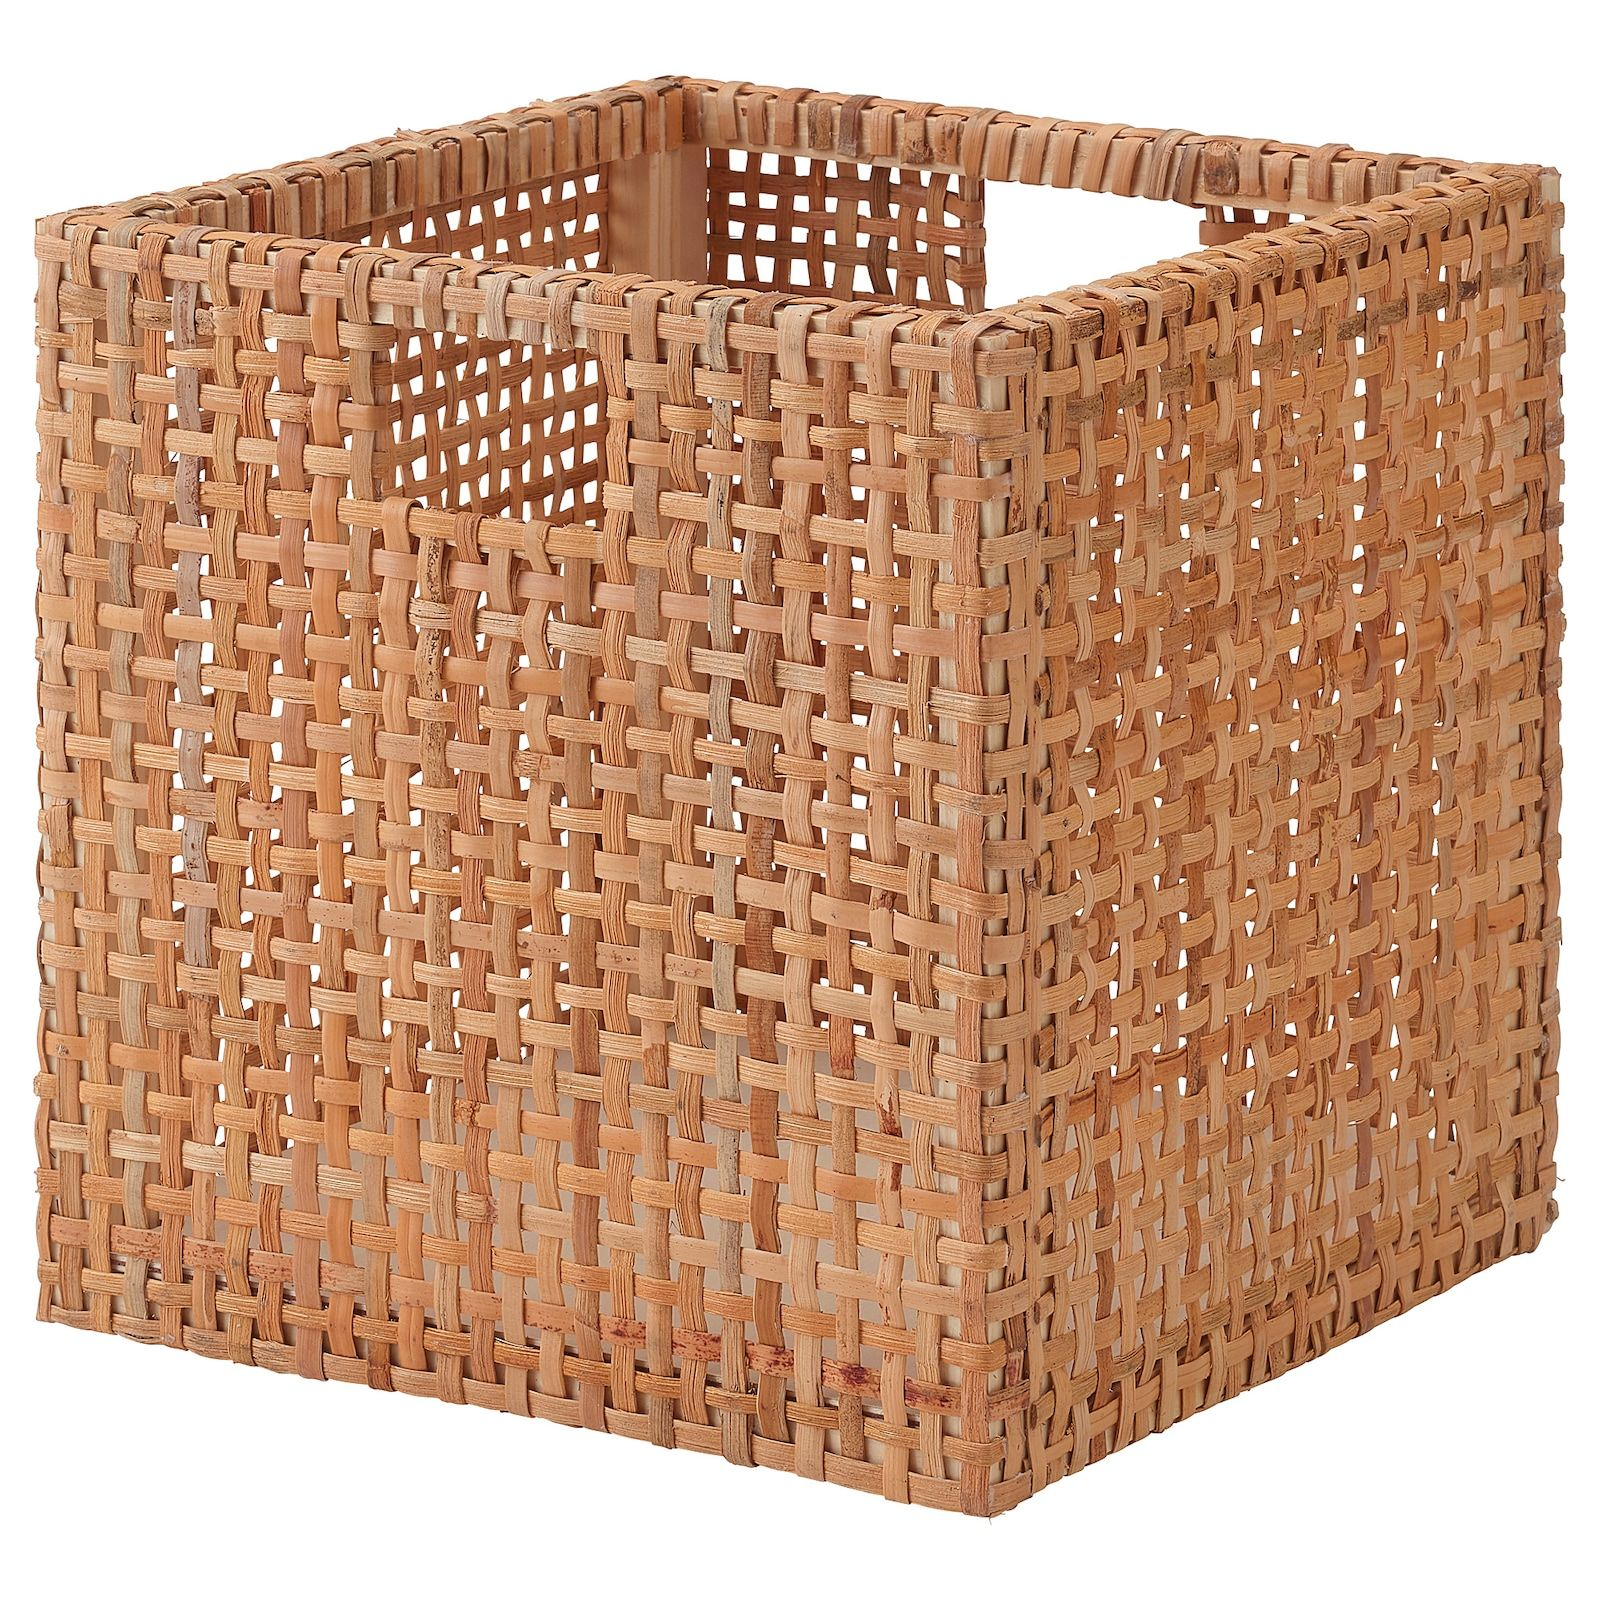 Haderittan Panier 30x30x30 Cm Ikea In 2020 Ikea Basket Wicker Baskets Storage Eket